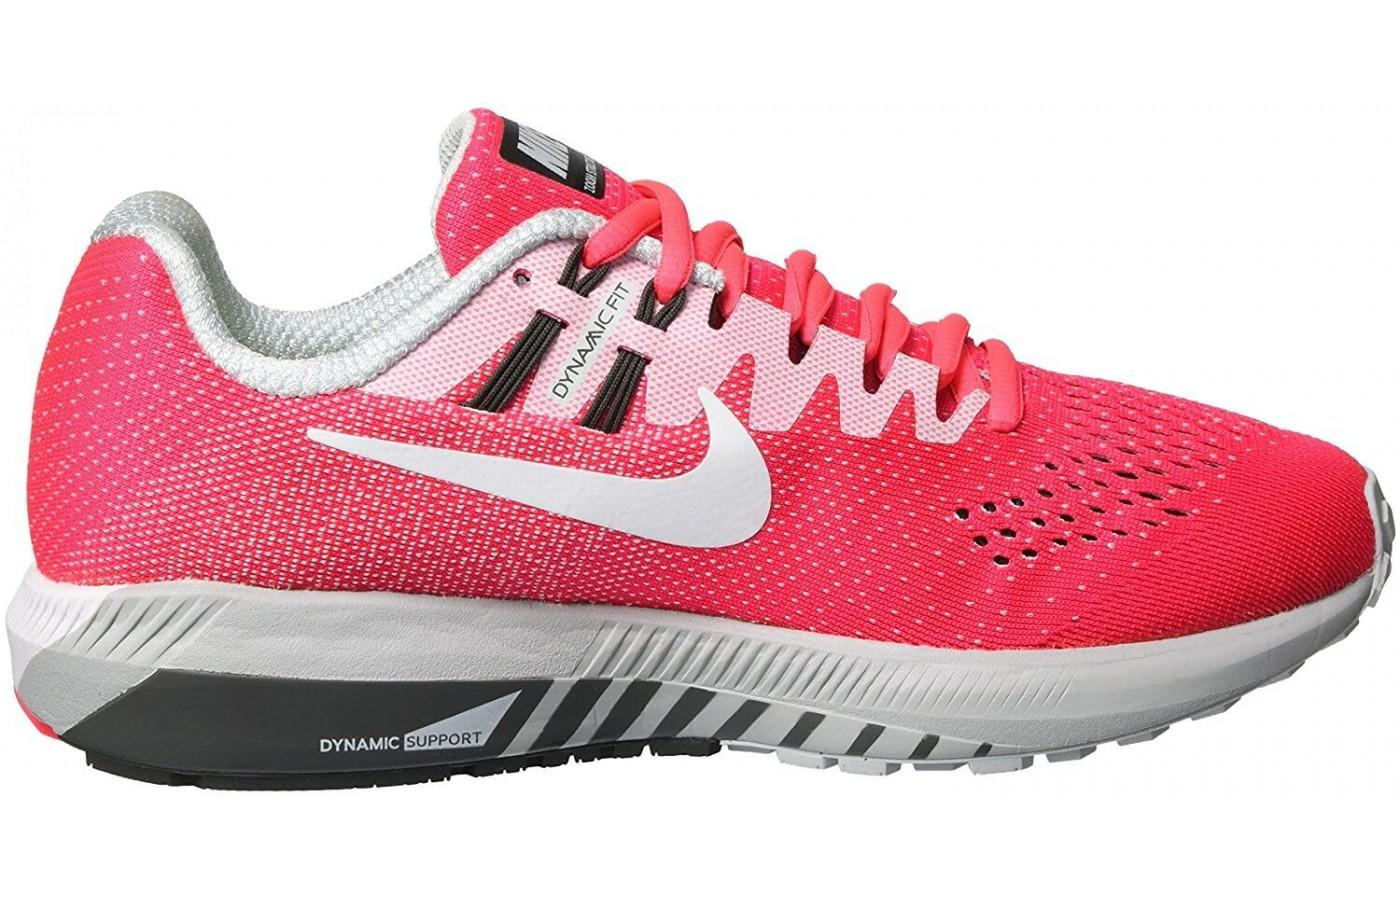 new styles 242f7 ab38a ... Nike air zoom structure 20 has a great design